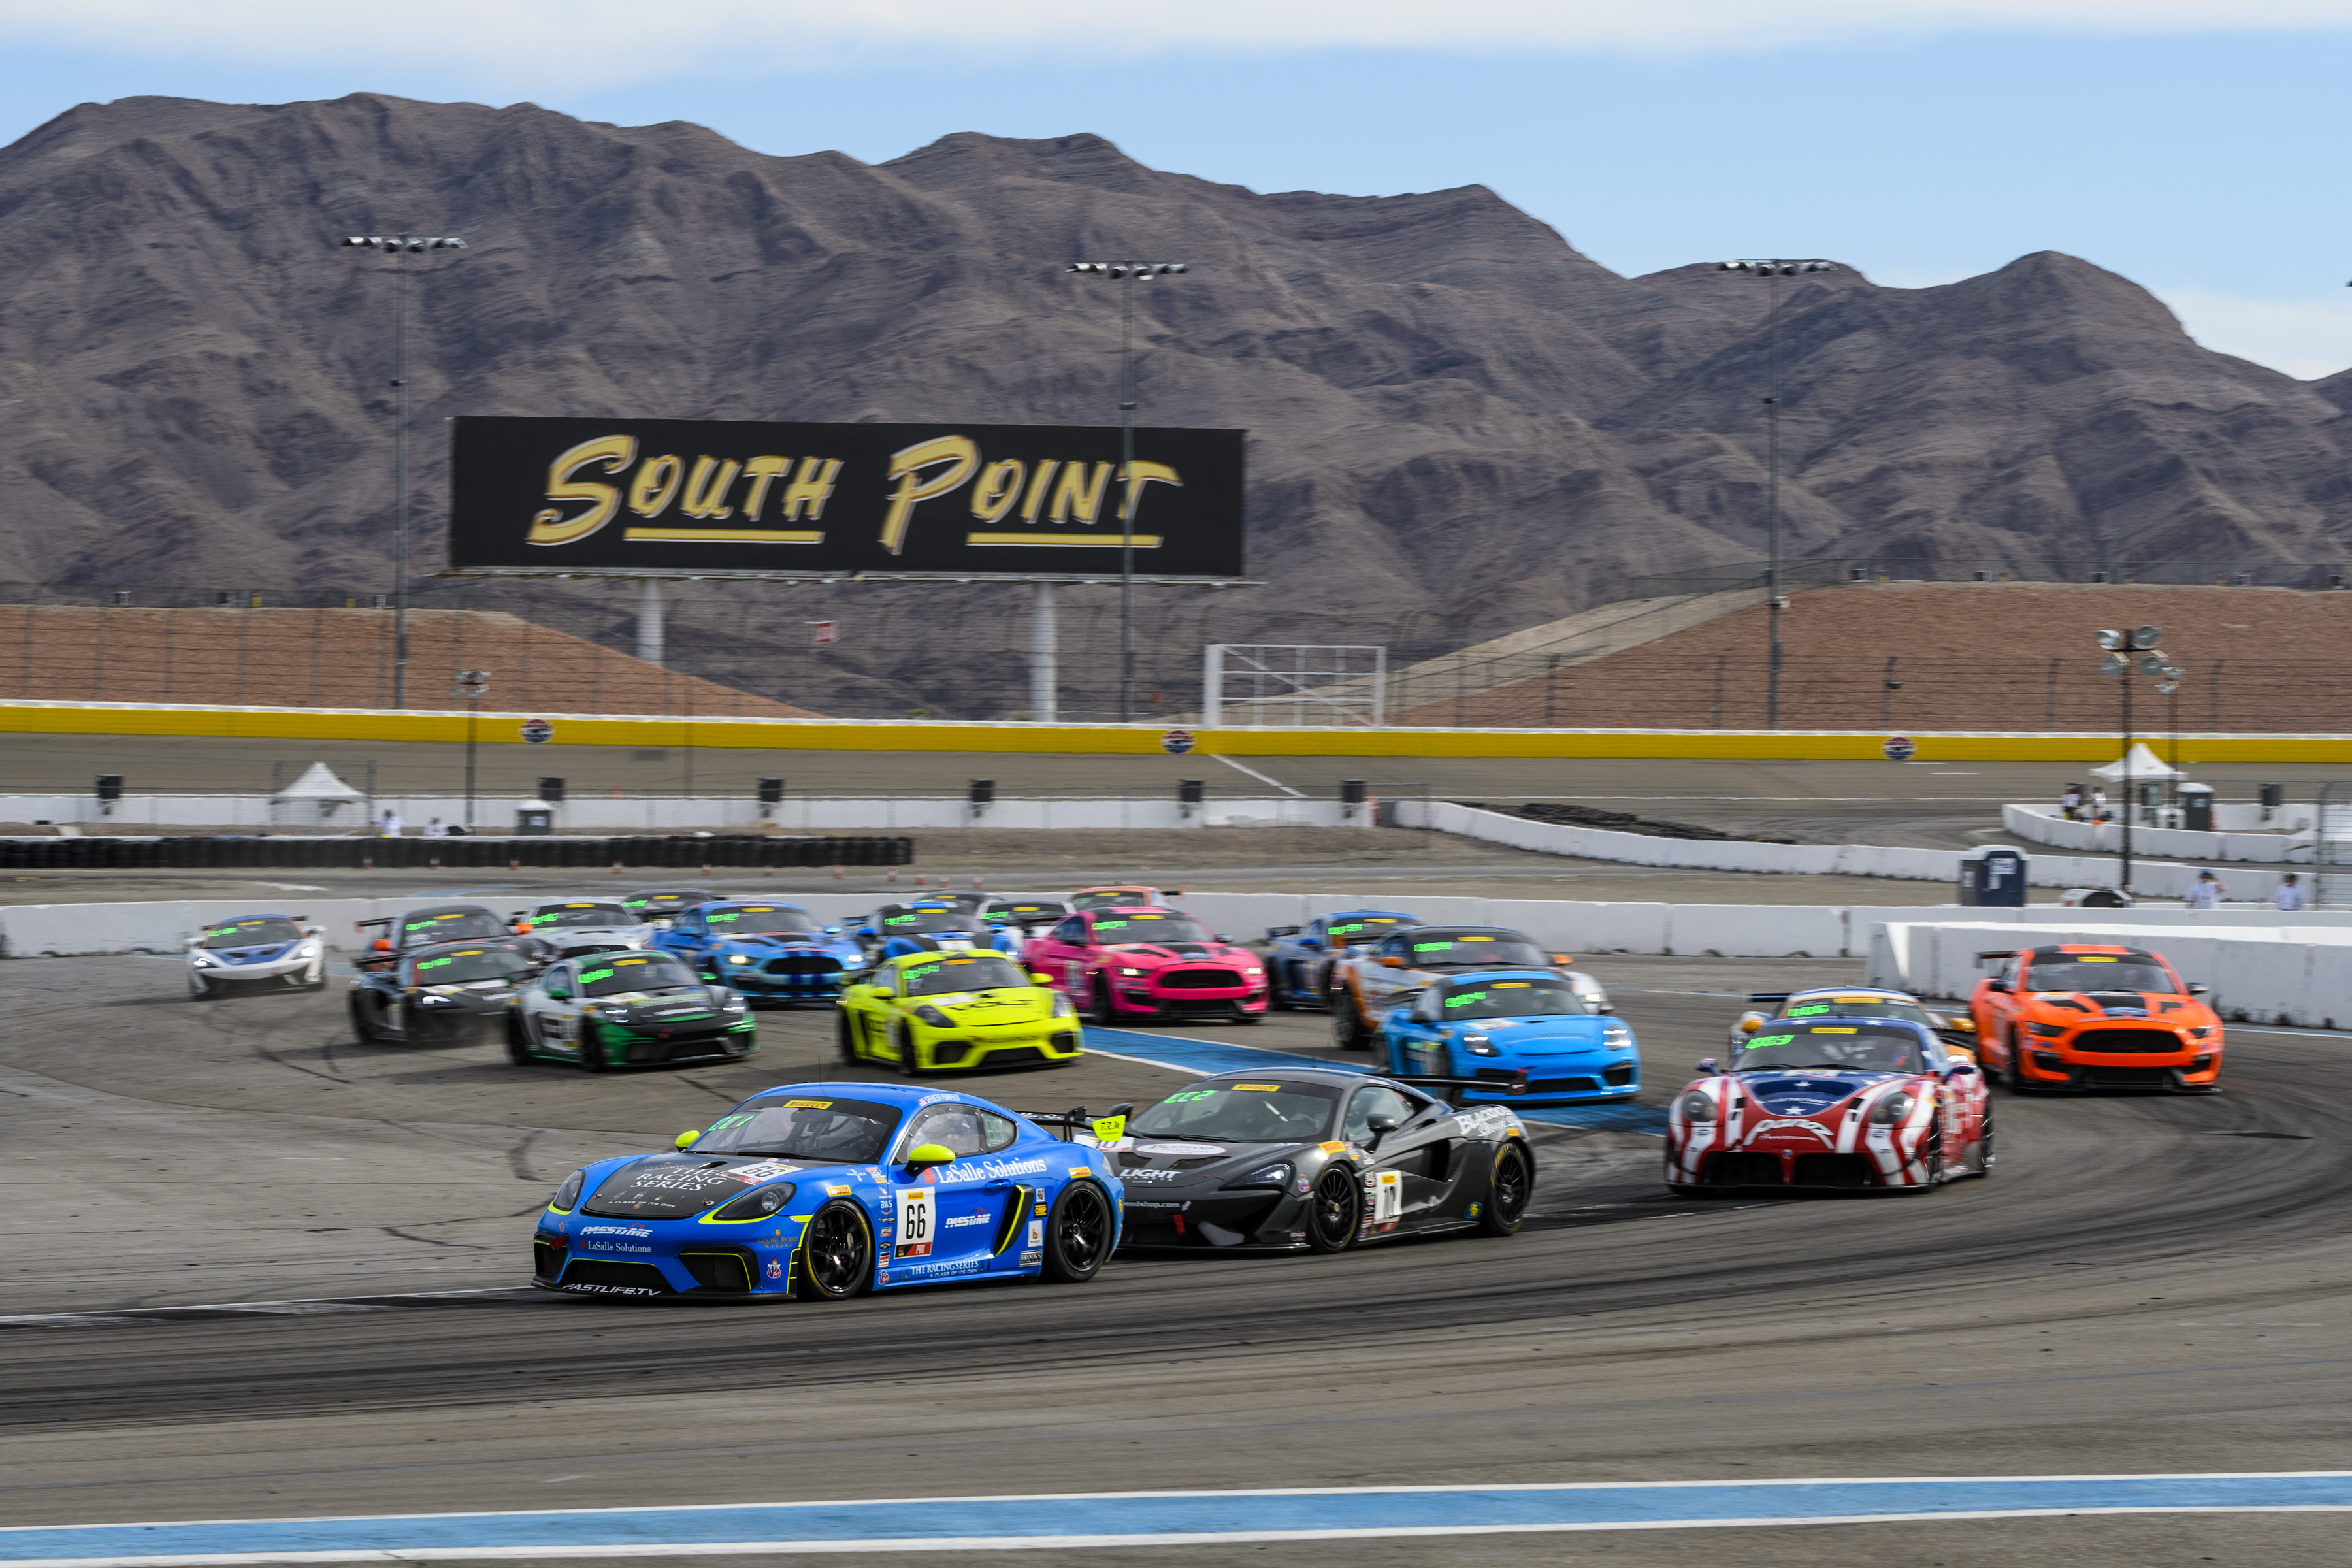 Porsche 718 Cayman GT4 Clubsport racing in SRO World Challenge at Las Vegas Motor Speedway, 2019, PCNA